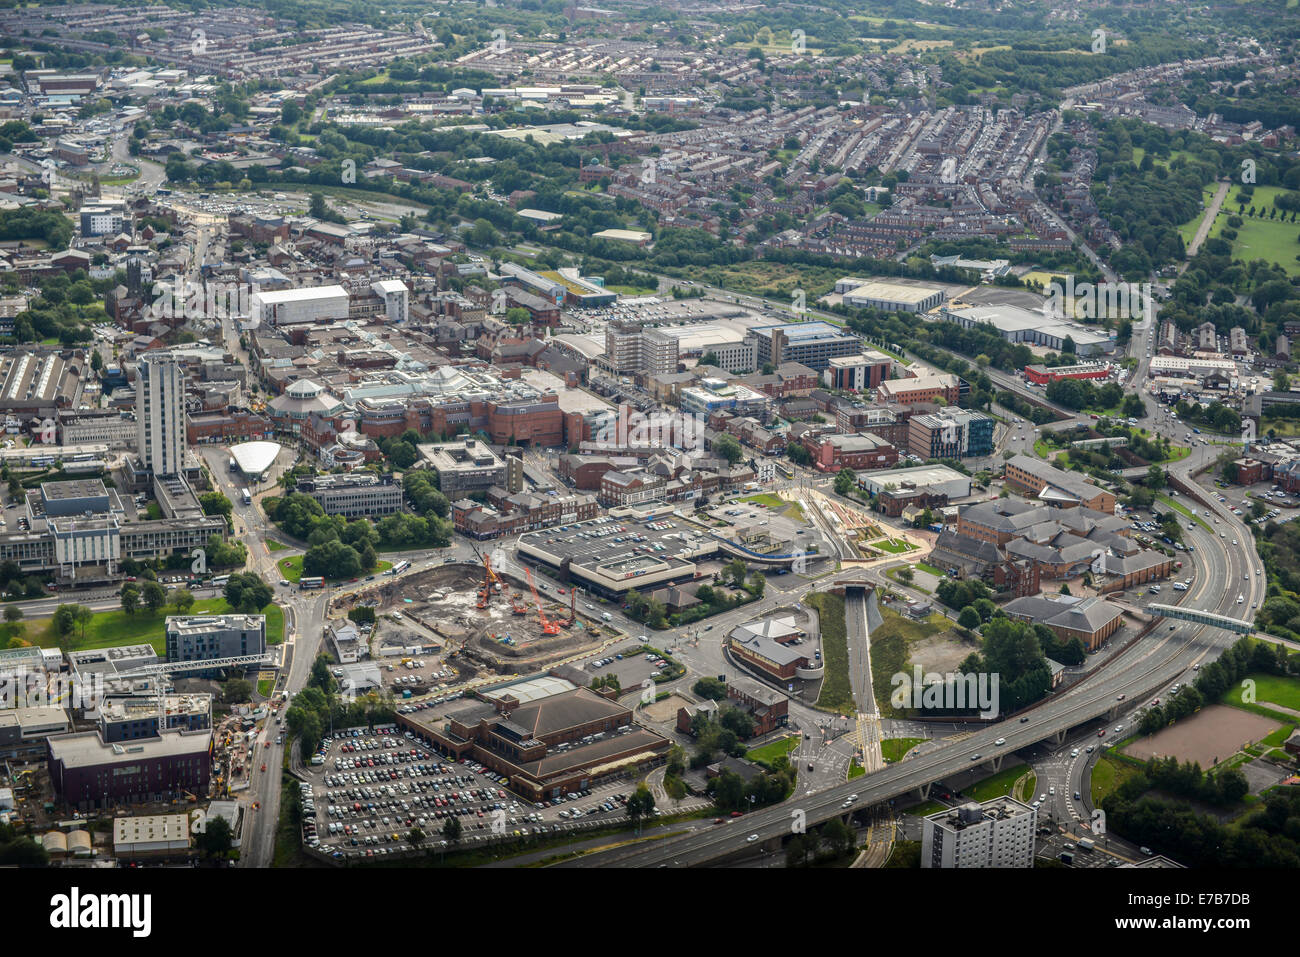 An aerial view of the centre of Oldham, Greater Manchester. - Stock Image